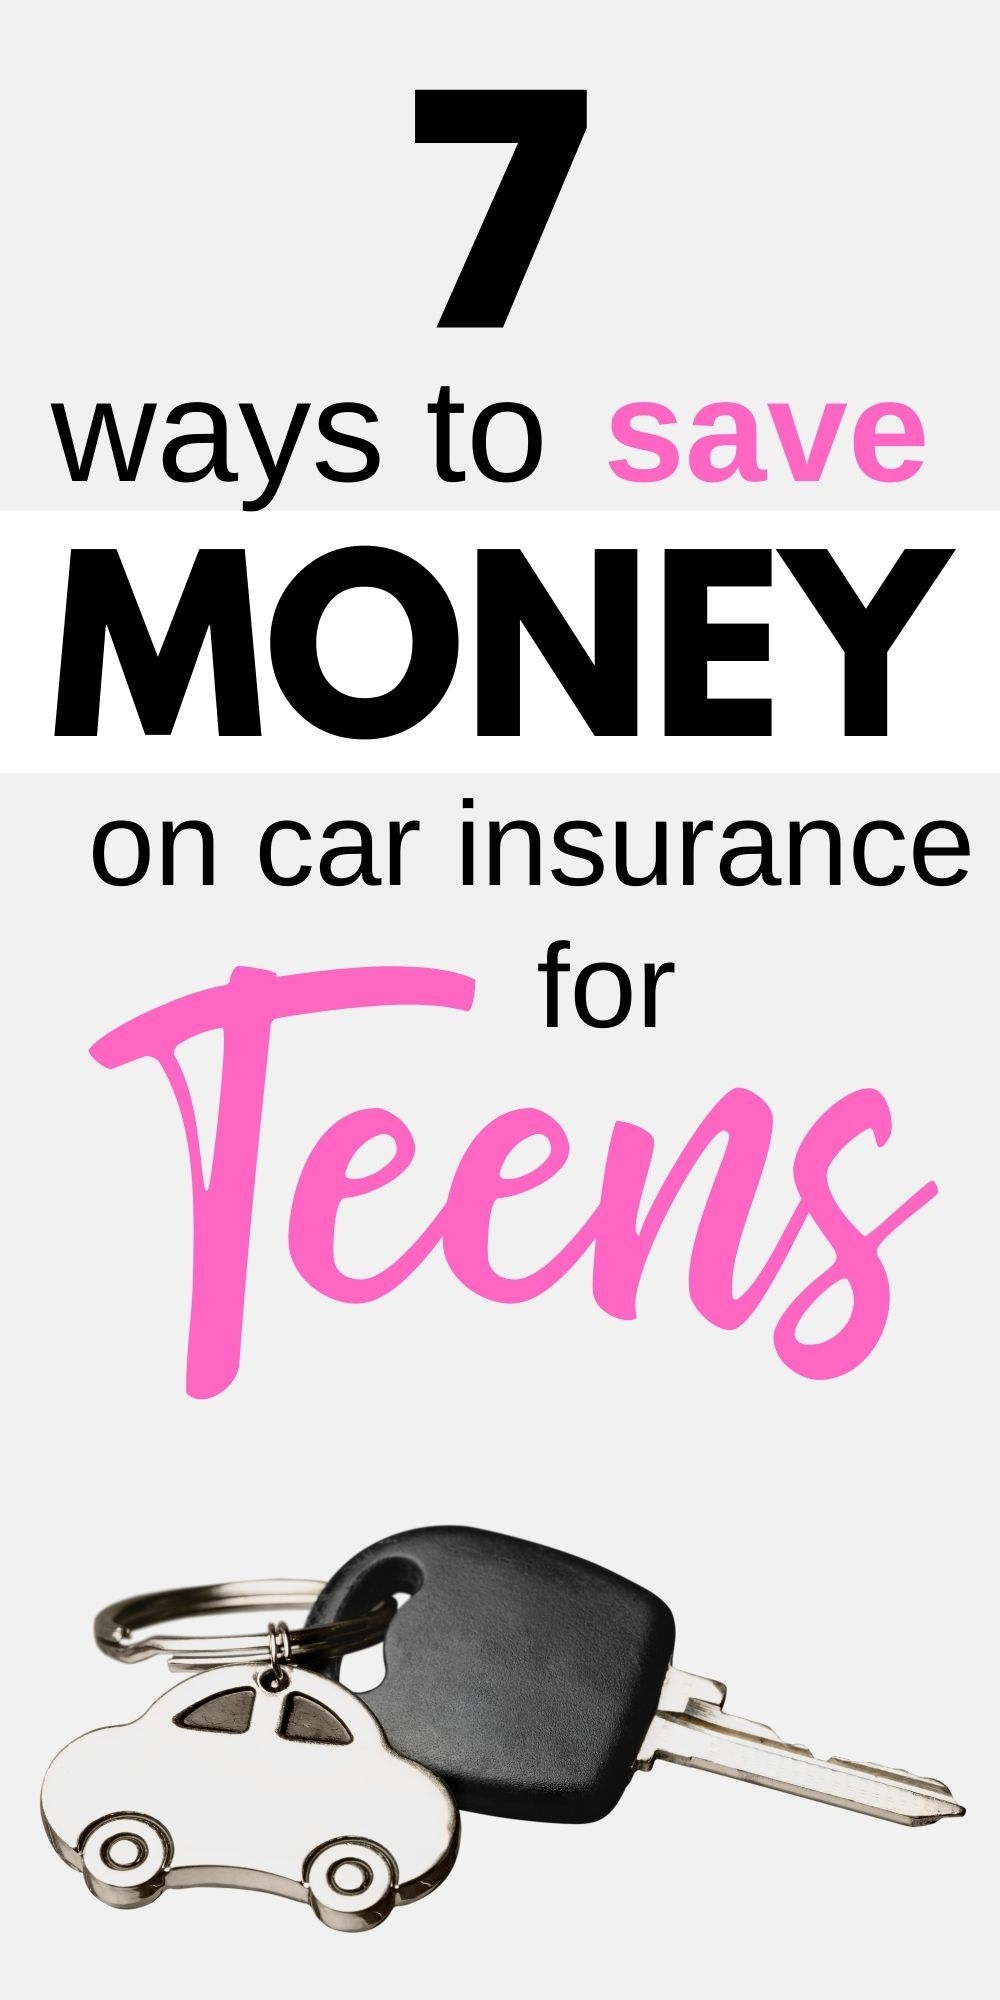 7 Ways to Get Cheap Car Insurance for Teens in 2020